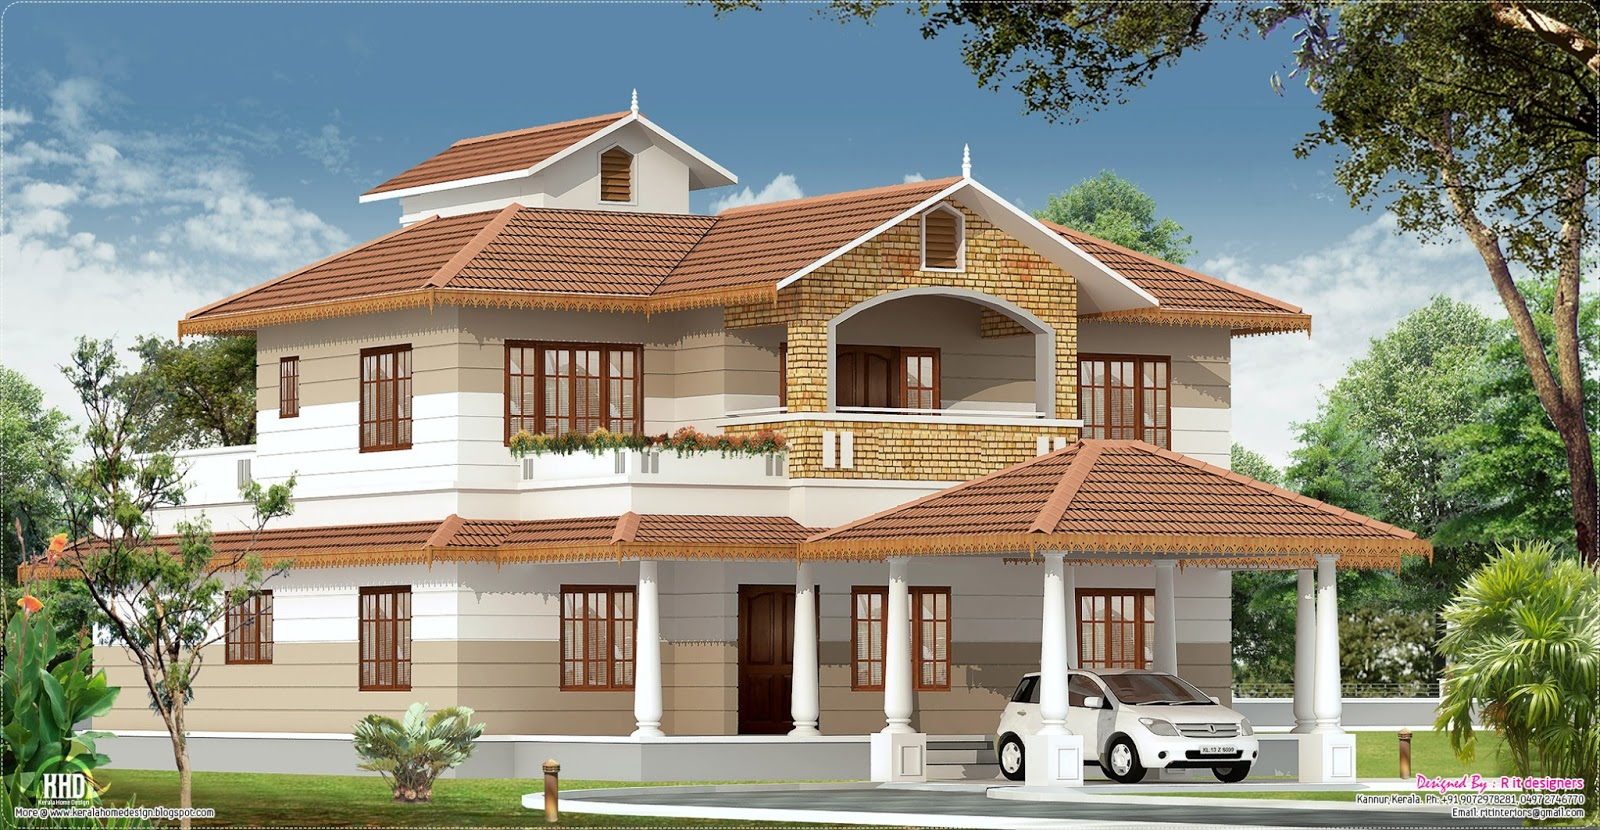 2700 kerala home with interior designs kerala for Kerala houses designs